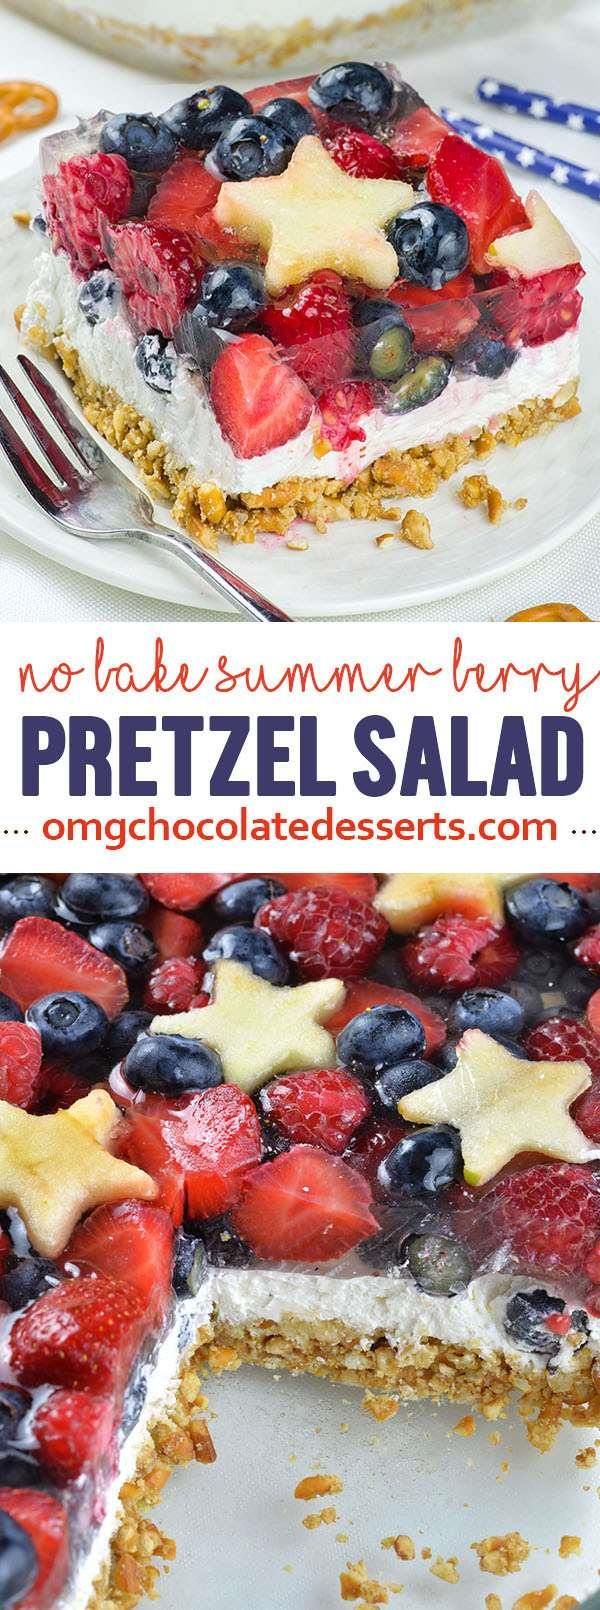 No Bake Summer Berry Pretzel Salad is quick and easy dessert recipe for delicious summer treat. Red, white and blue dessert is definitely fun and festive idea for 4th of July party.